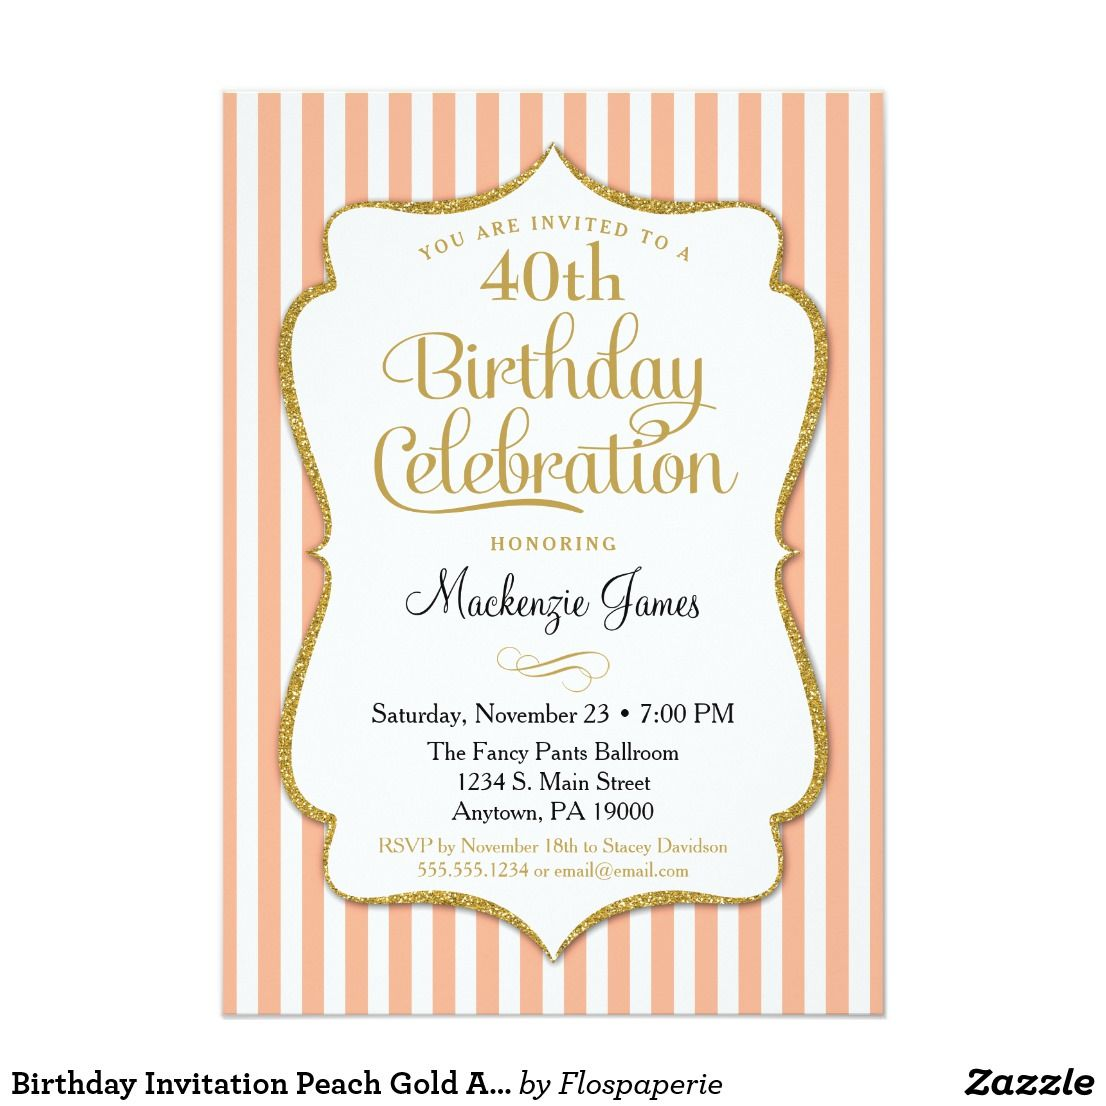 Birthday Invitation Peach Gold Adult Stripes An Elegant Party In And Featuring White Glitter Text